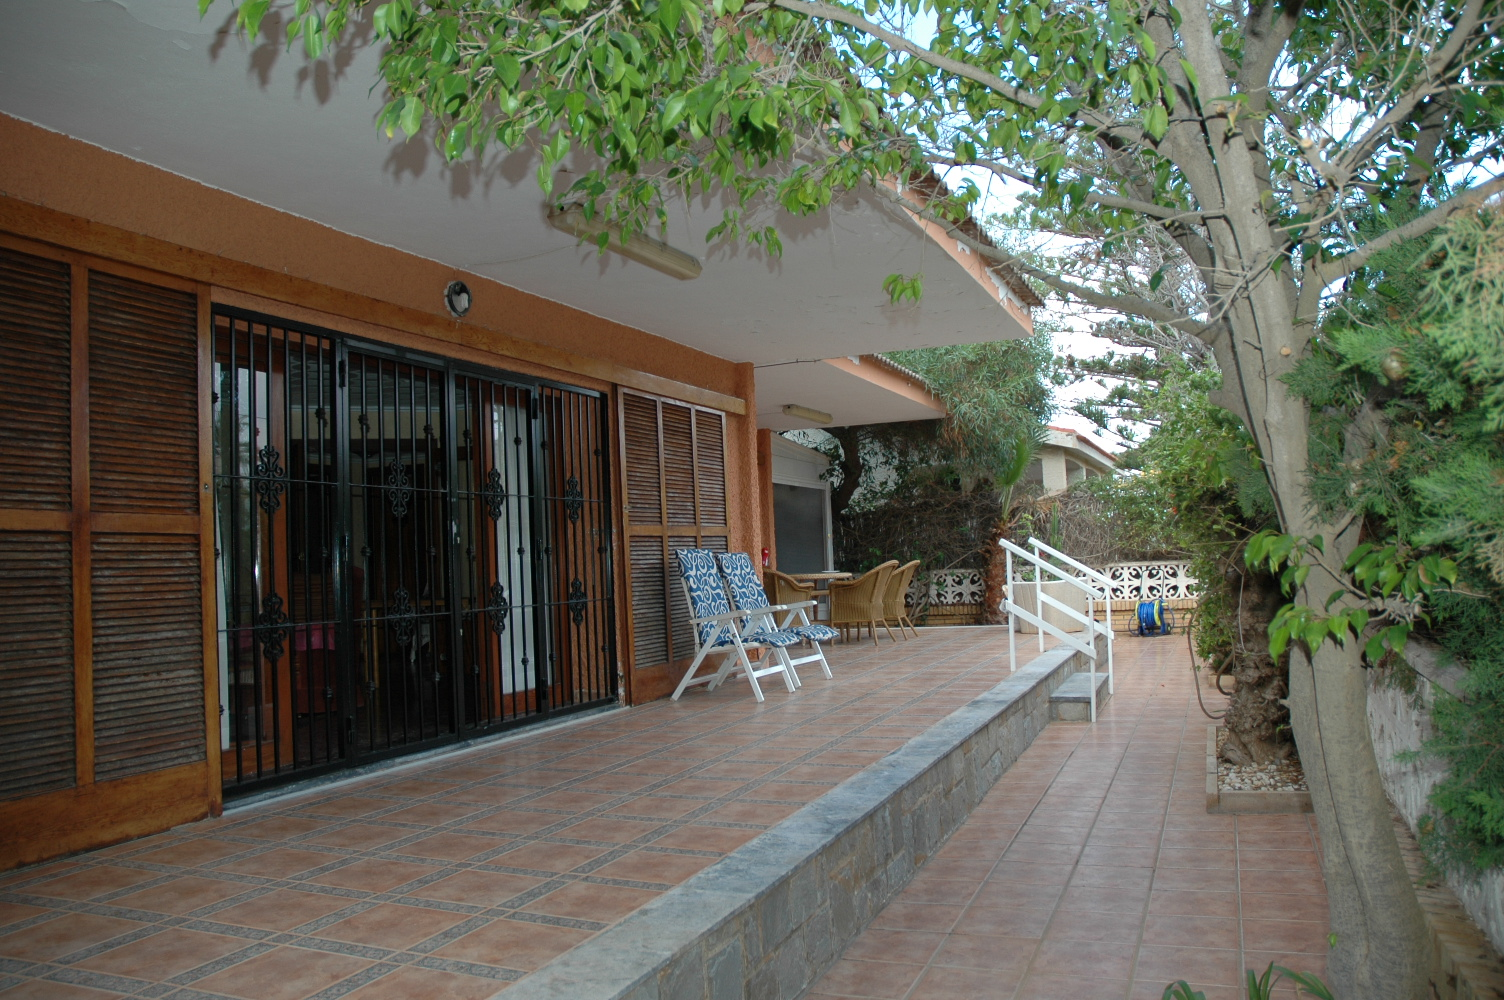 Ref:MAR-18 Bungalow For Sale in Mar De Cristal